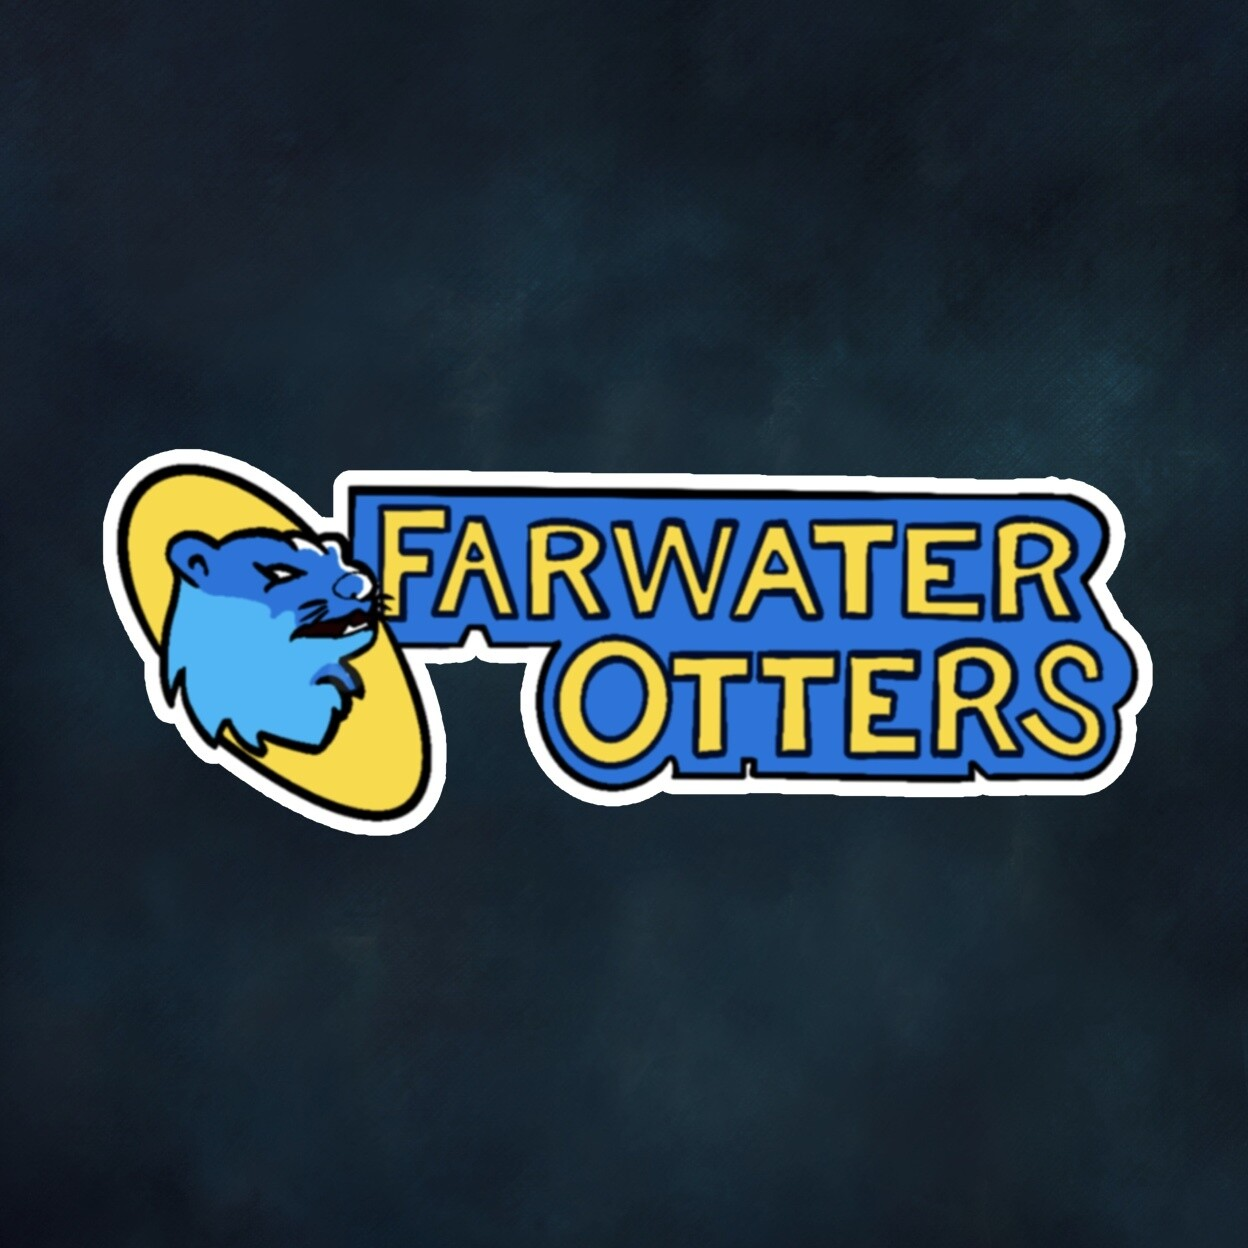 Far Water Otters Sticker